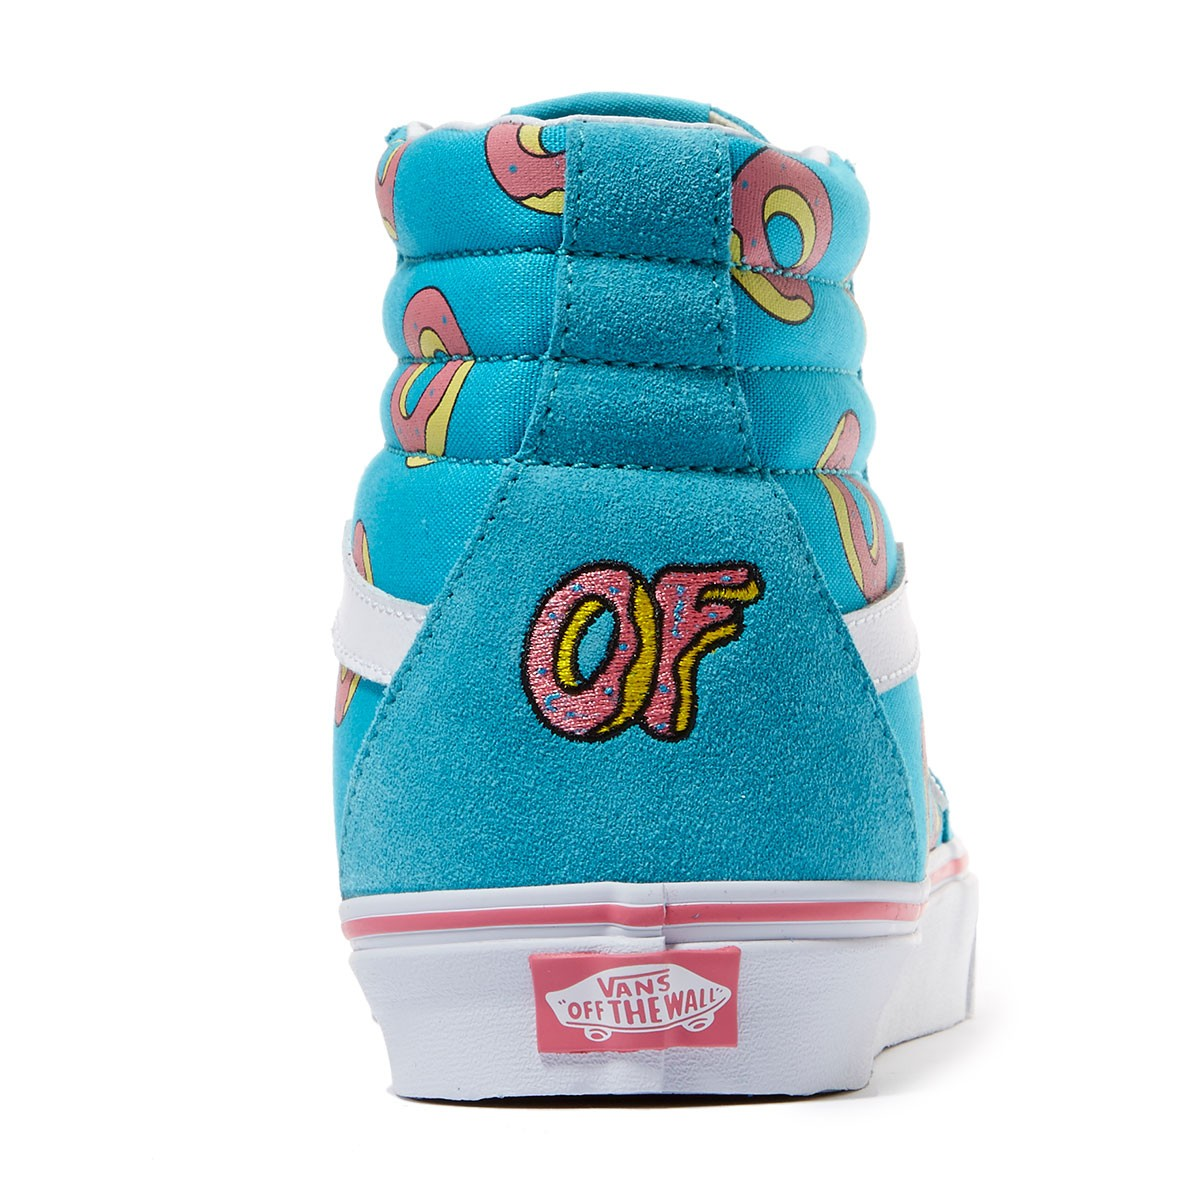 92e508bc684 Vans X Odd Future SK8-HI Shoes - Future Donut Scuba Blue - 7.0